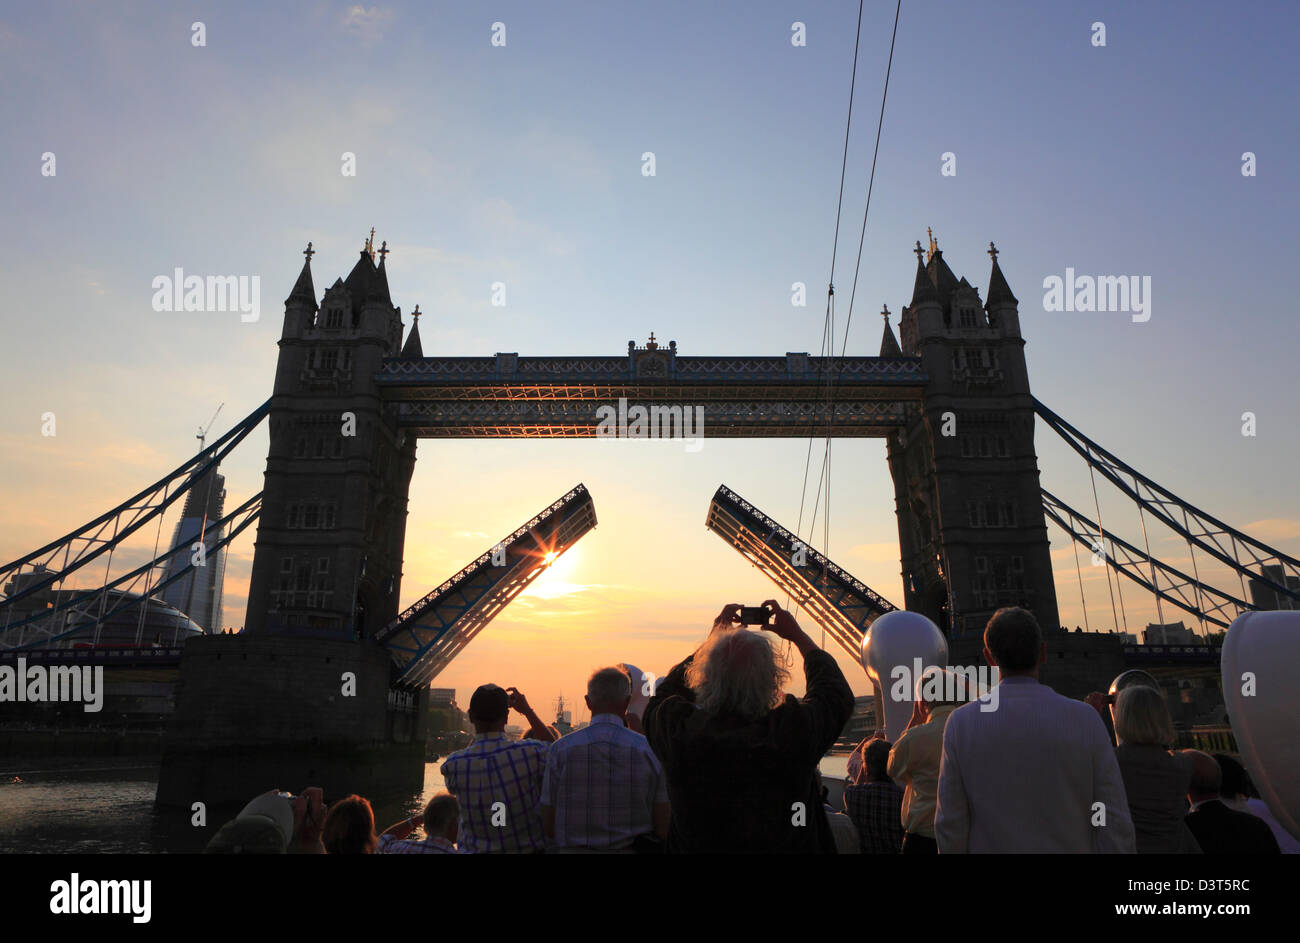 Tourists photographing Tower Bridge at sunset from a boat on the River Thames London England UK GB Taking a photo - Stock Image